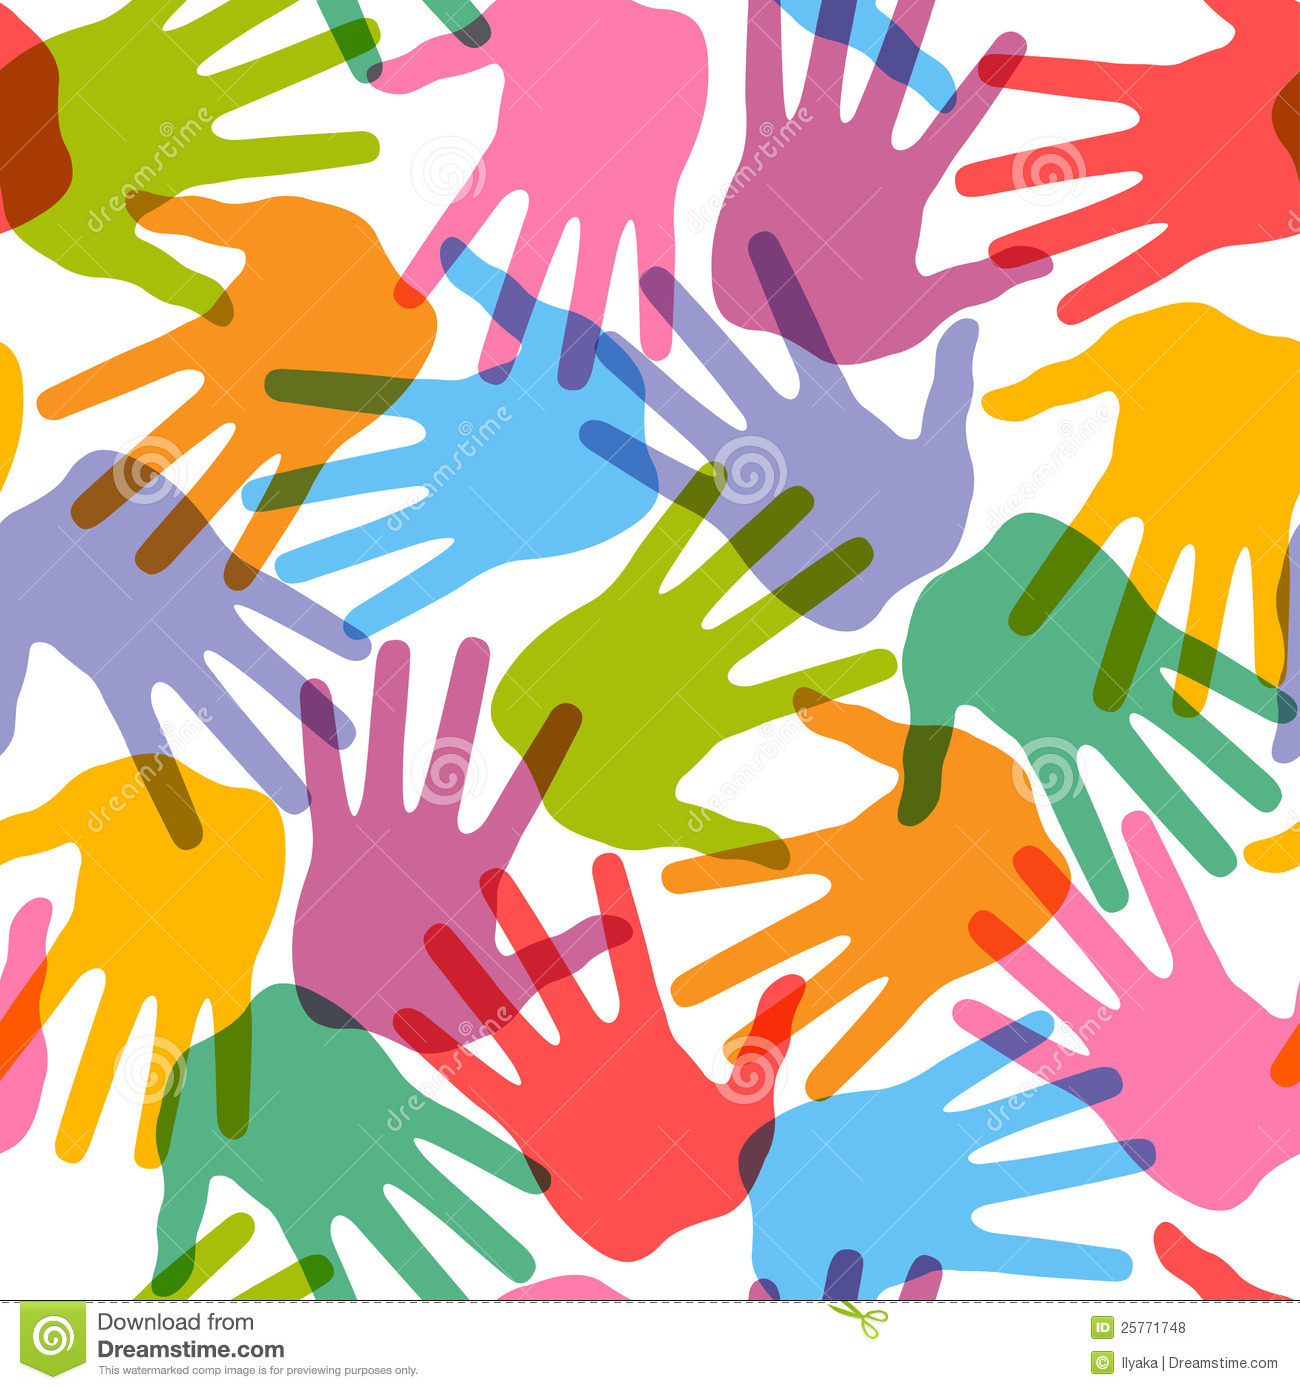 Seamless Handprint Pattern Royalty Free Stock Photos - Image: 25771748